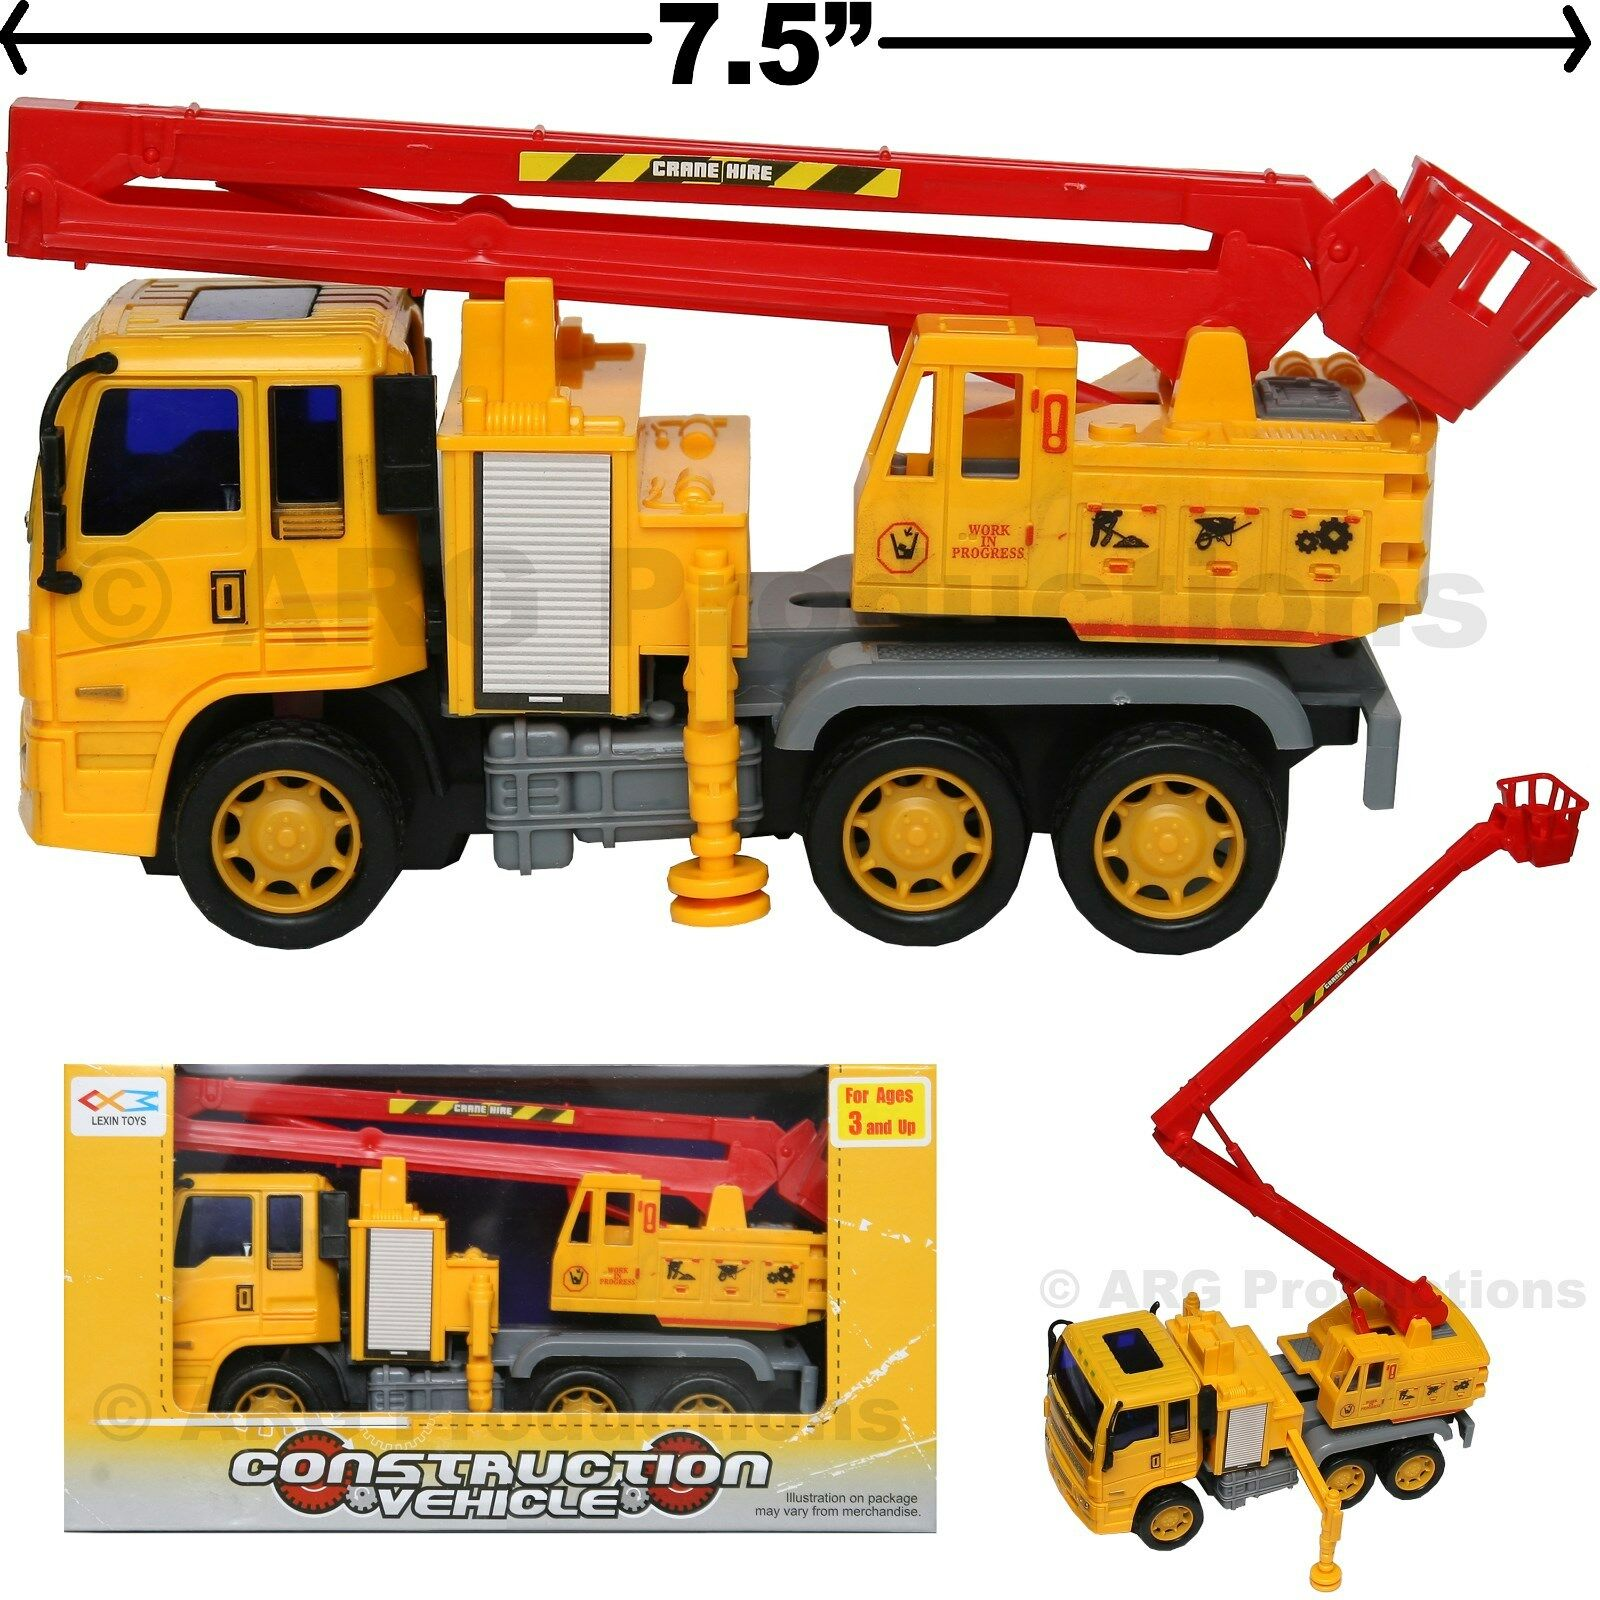 Dump Truck Toy Construction Vehicle Friction Powered Kids Love